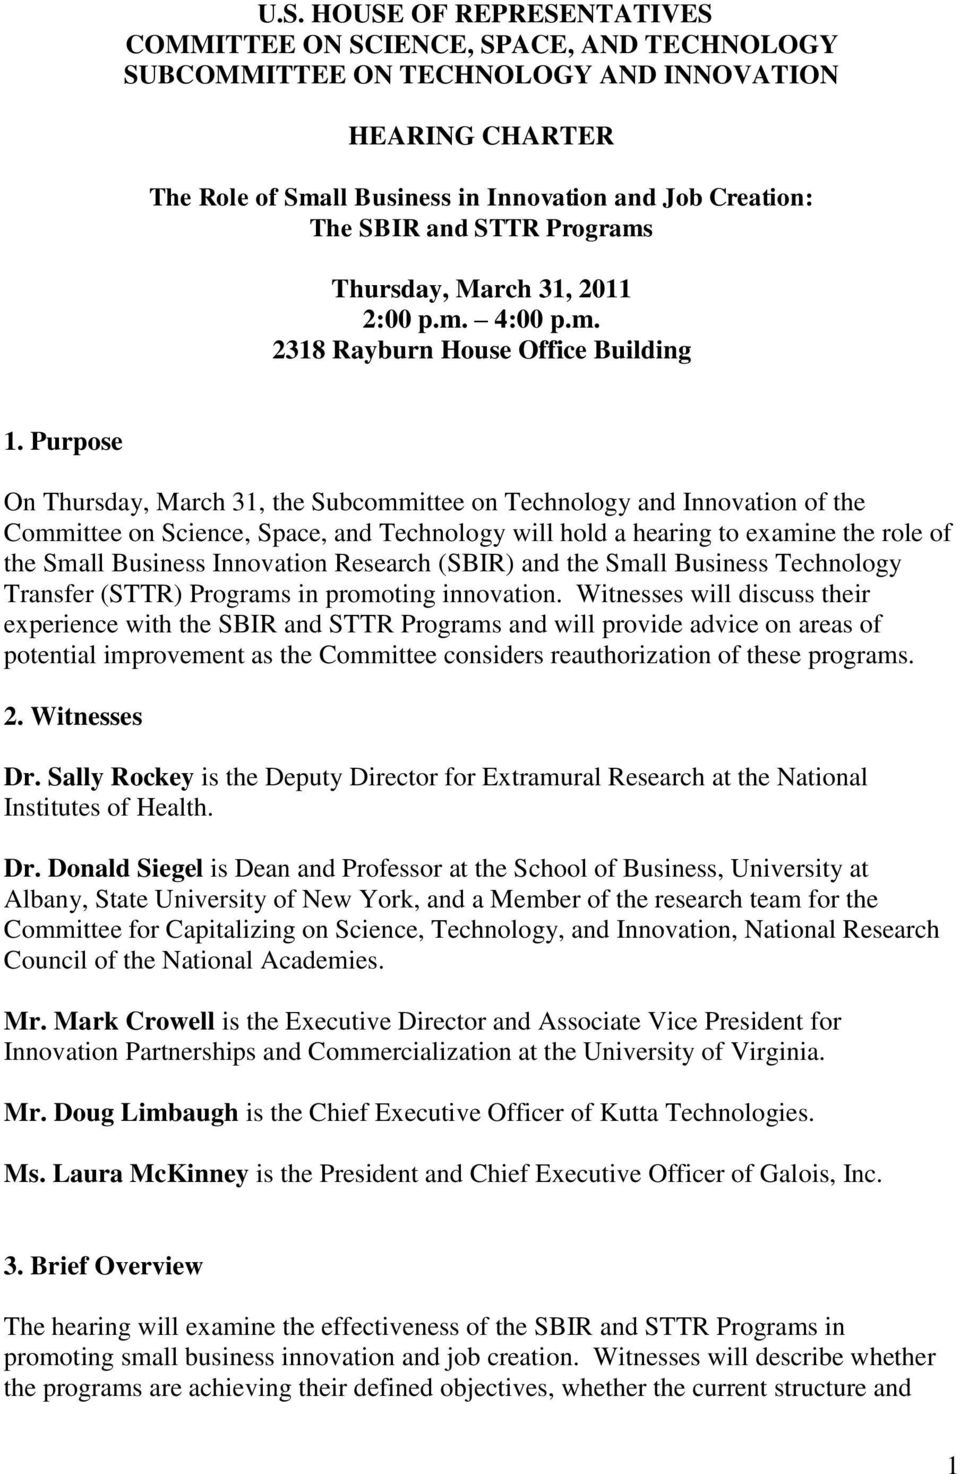 Purpose On Thursday, March 31, the Subcommittee on Technology and Innovation of the Committee on Science, Space, and Technology will hold a hearing to examine the role of the Small Business